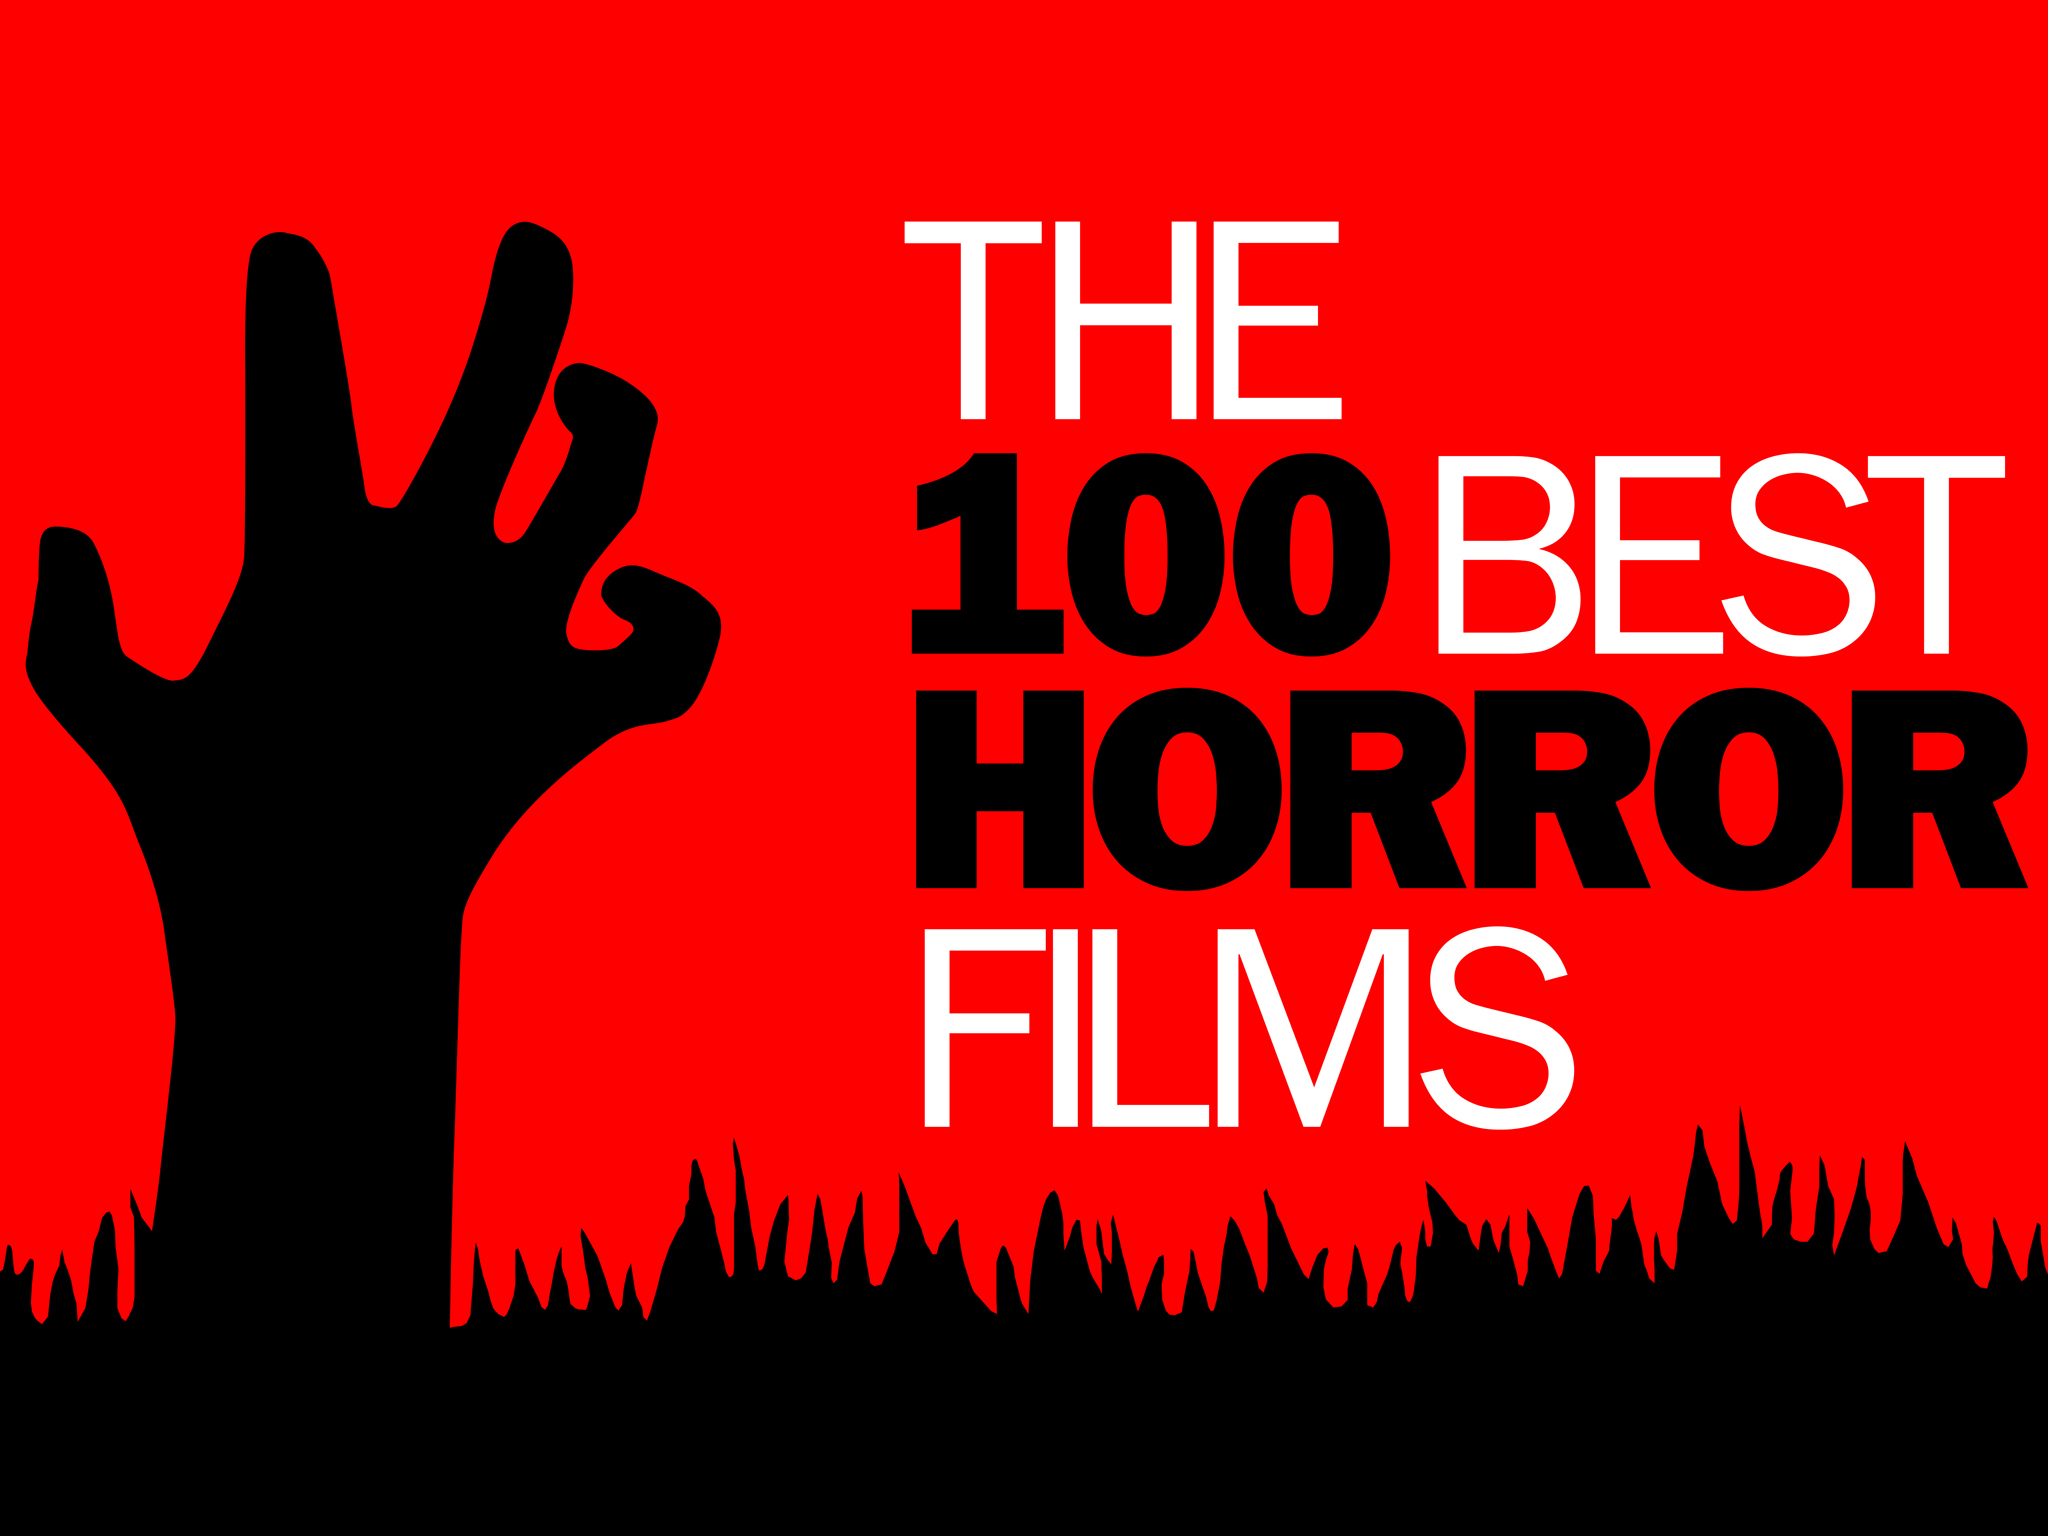 The 100 best horror films logo, 2048x1536